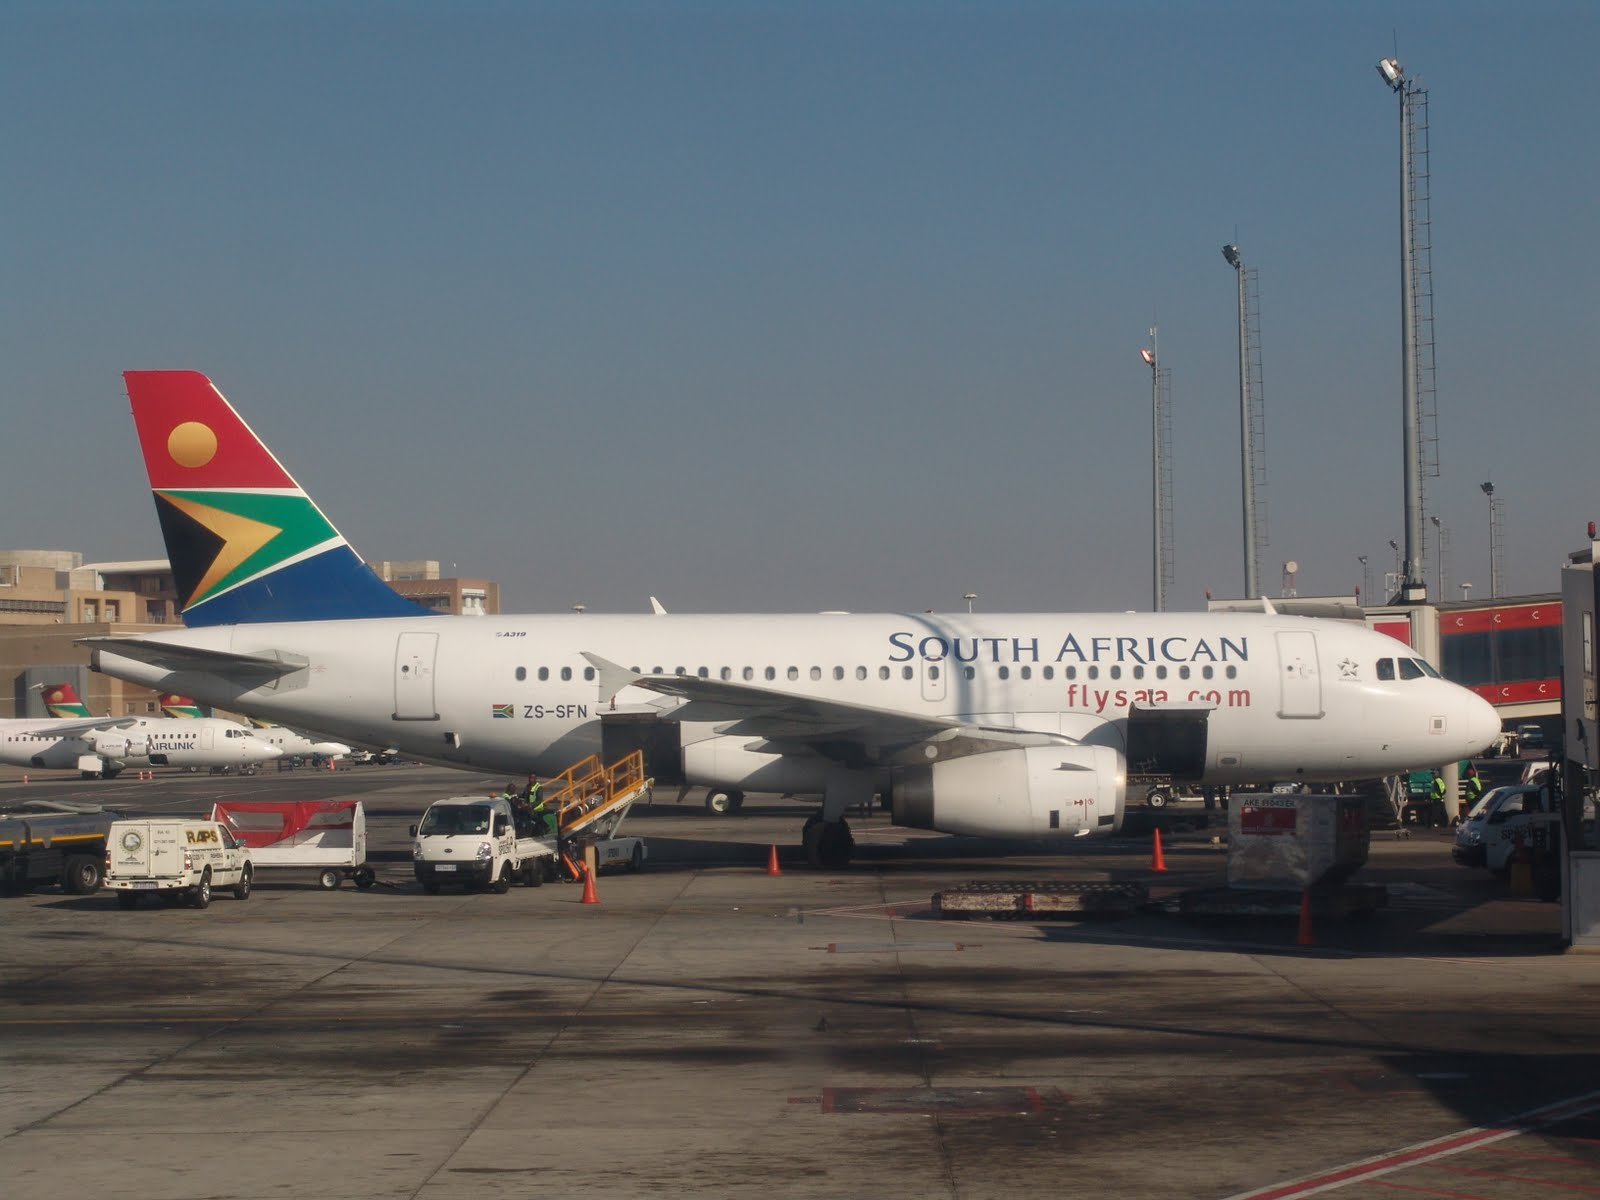 saa south african airways airline: